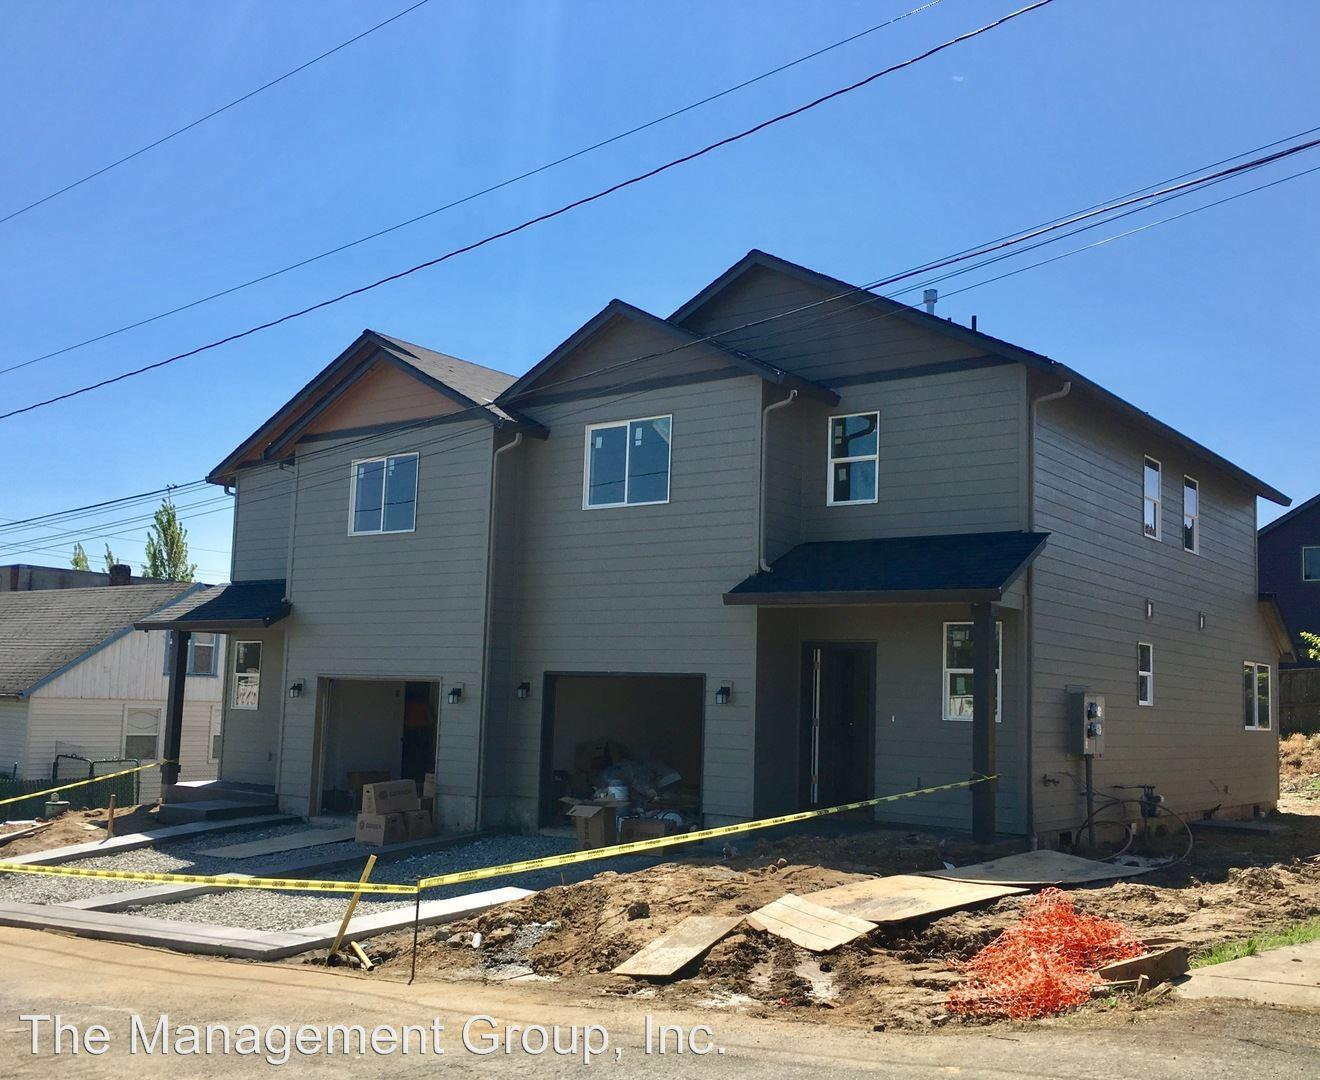 105 NE 77th Street, #A & B Apartments - Brand New Gorgeous Townhome in Great Hazel Dell Location! - Be the first to call this beautiful and brand new townhouse your home! Situated near 78th and Hazel Dell Ave, this duplex is within close proximity to local shopping, restaurants and I-5